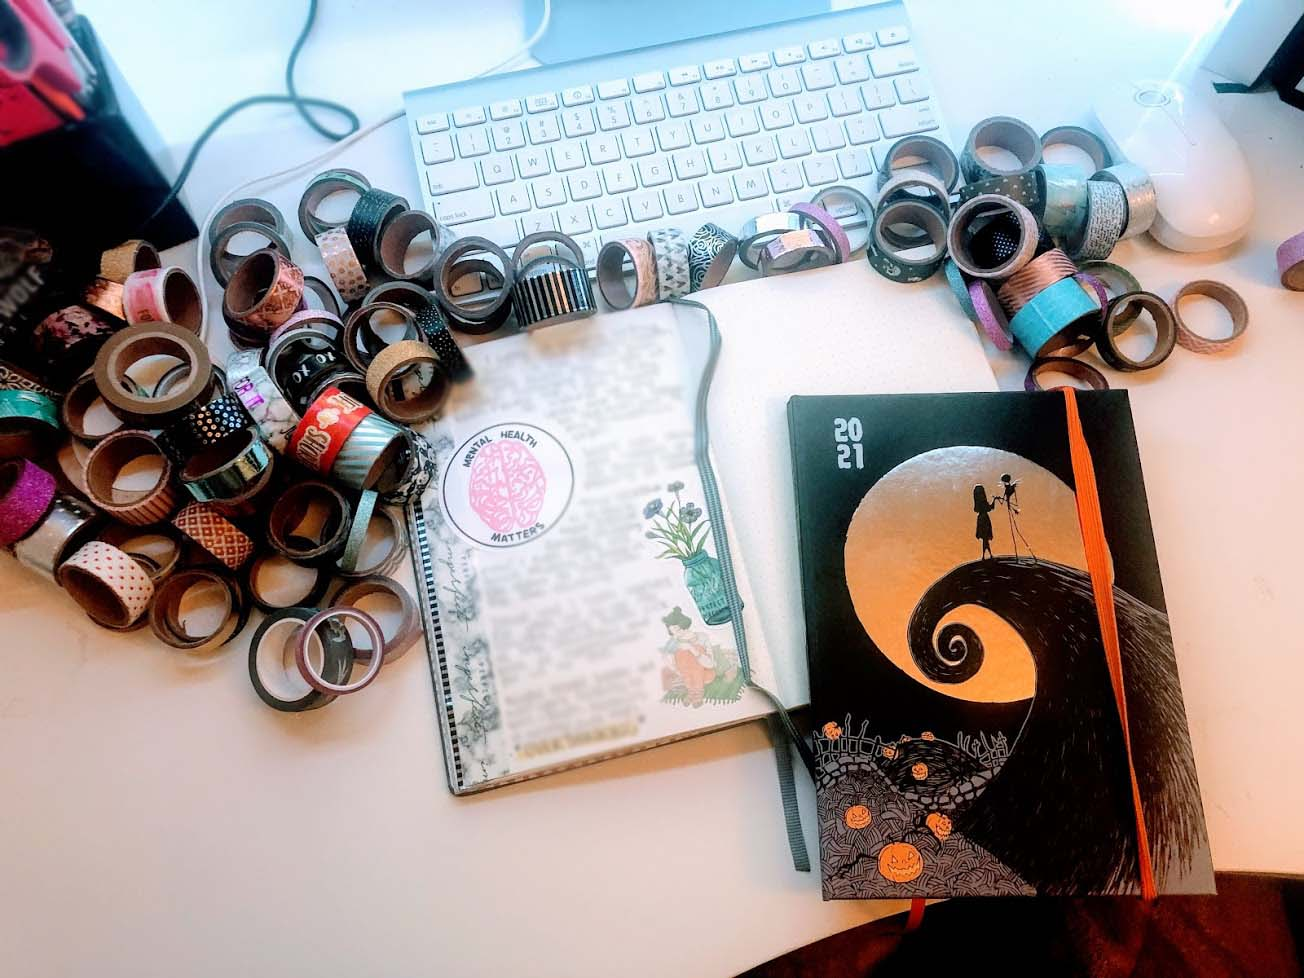 Journal, washi tape and a diary